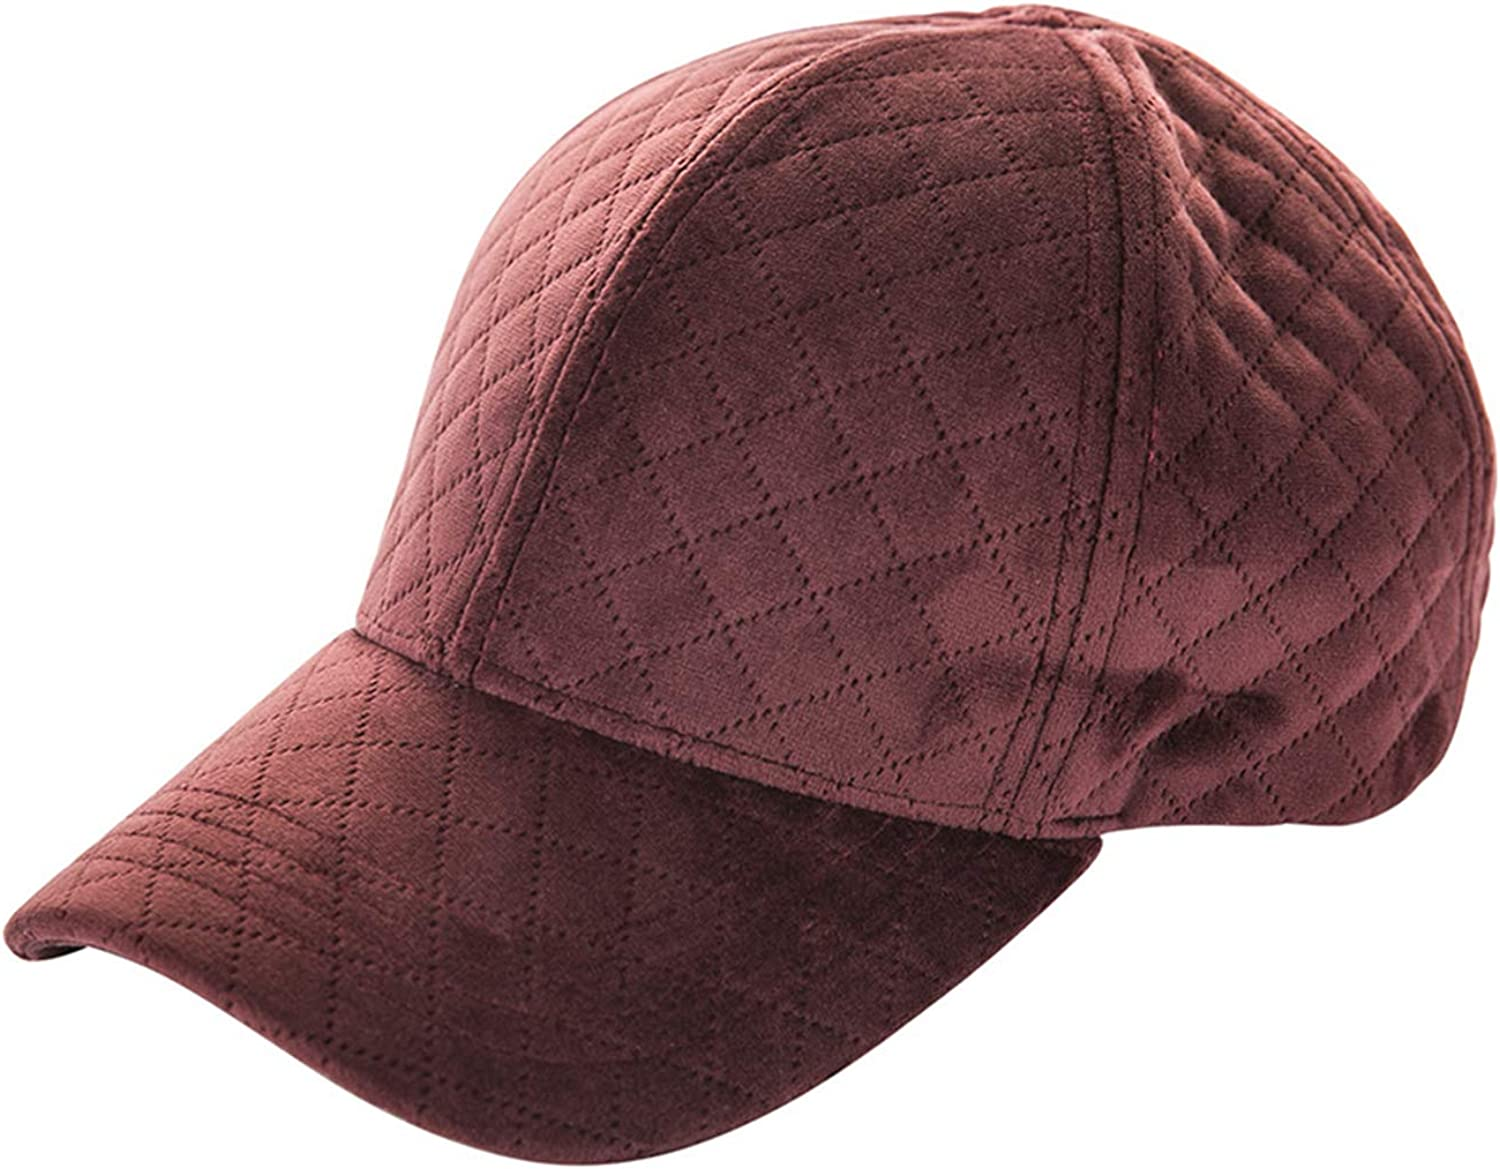 Women's Fashion Casual Baseball Hat Solid color Classic Visor Hat for Autumn Winter Outdoor Activities UseOne Size